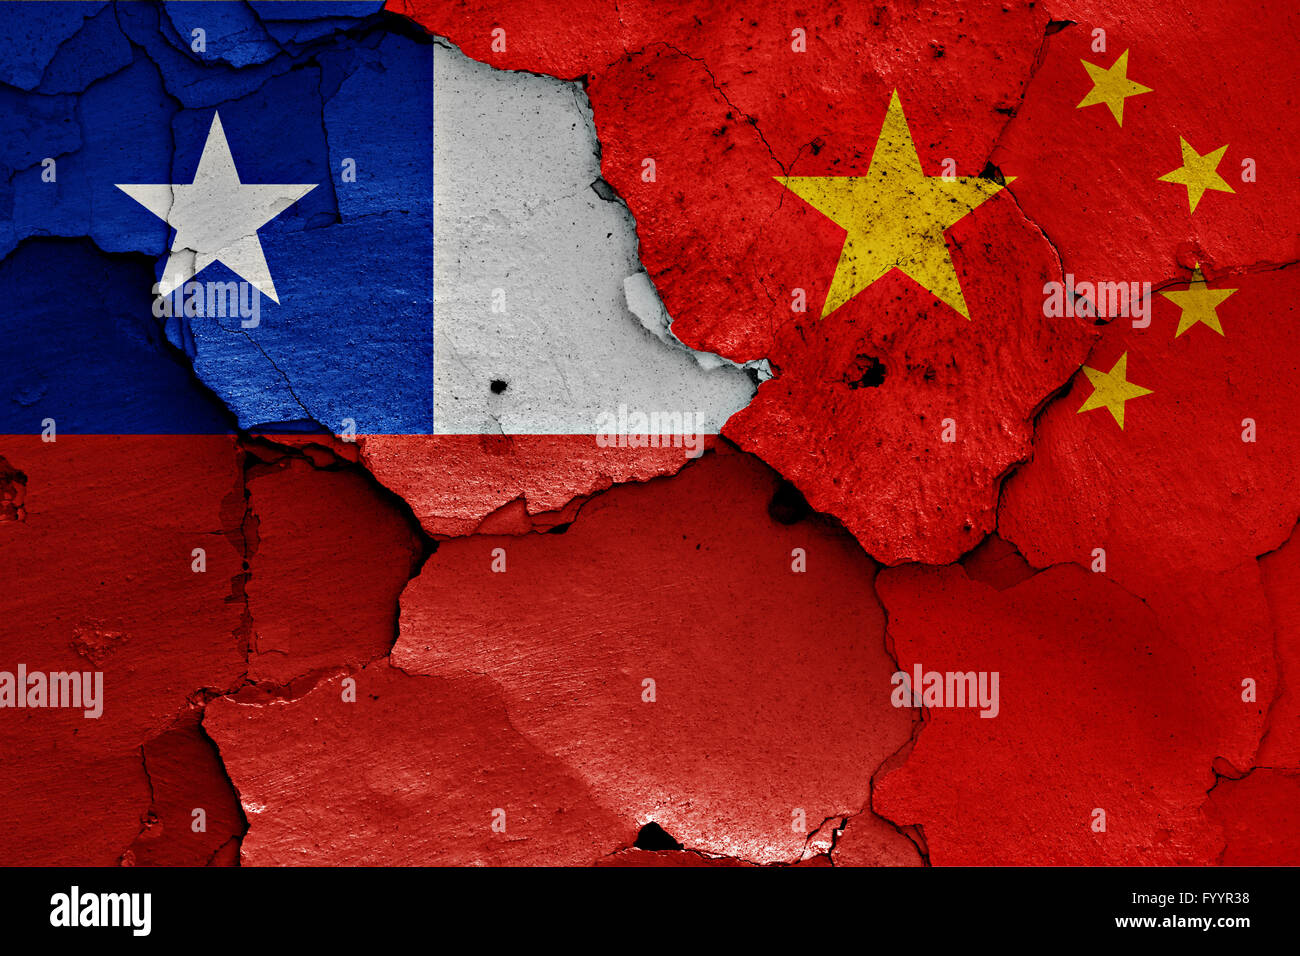 flags of Chile and China painted on cracked wall - Stock Image